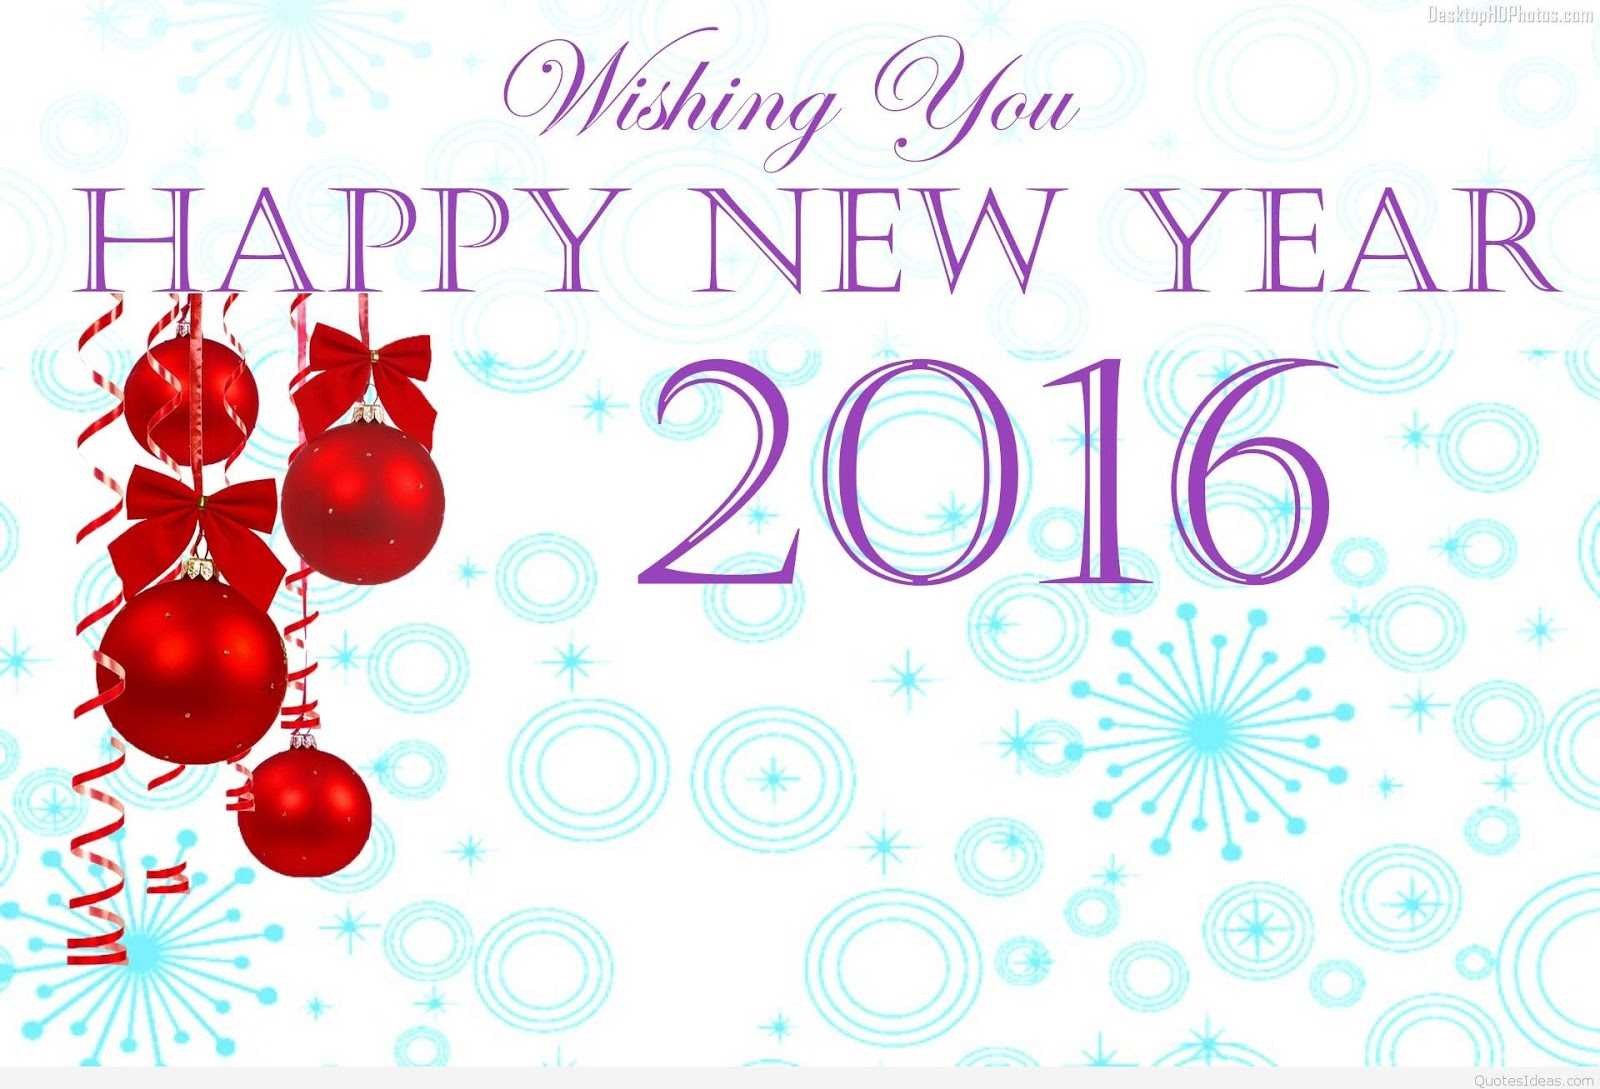 Happy New Year 2016 Greetings Happy New Year Images 2016 Happy